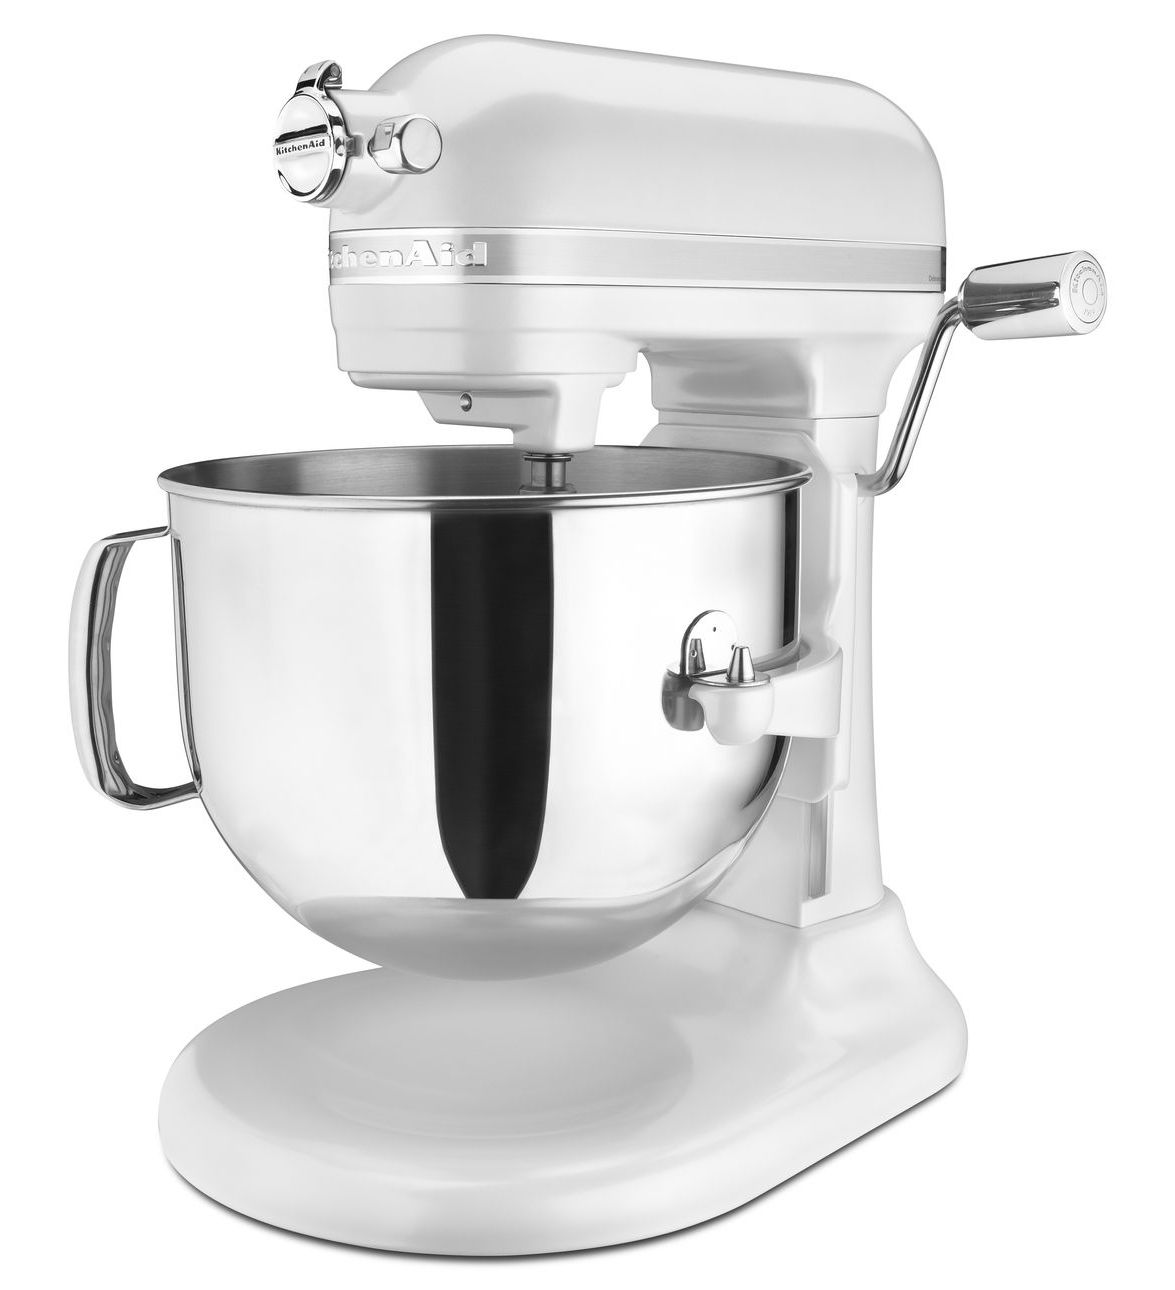 Kitchenaid pro line 7 qt stand mixer frosted pearl you save - Kitchenaid qt mixer review ...